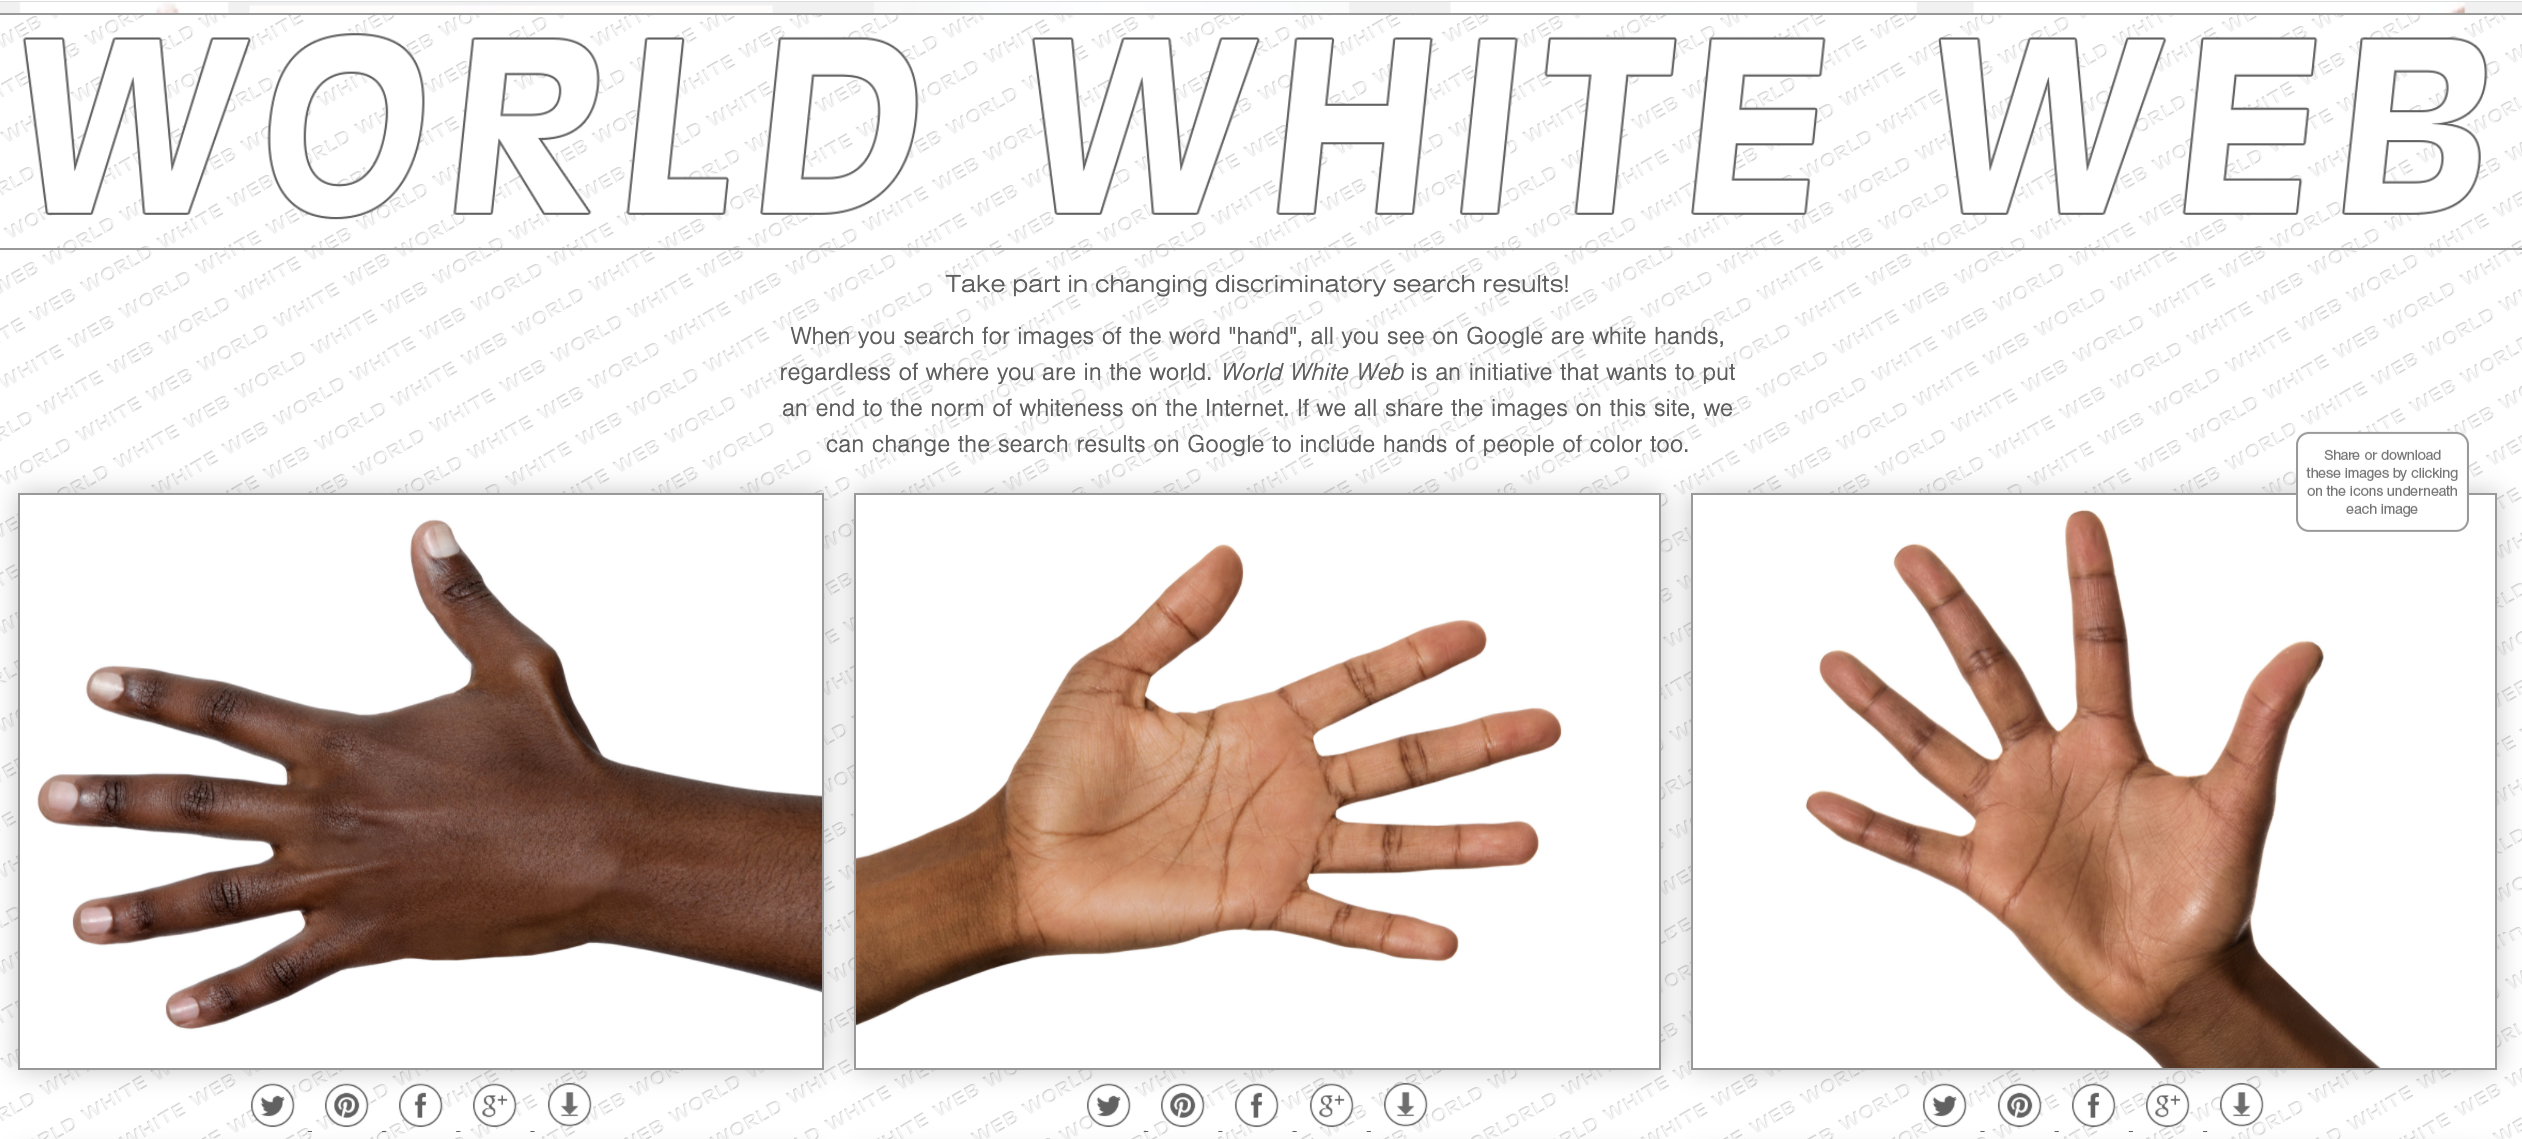 Screenshot from Burai's World White Web project, showing three images of dark-skinned hands and text asking users to share the images to influence their ranking in Google Photos